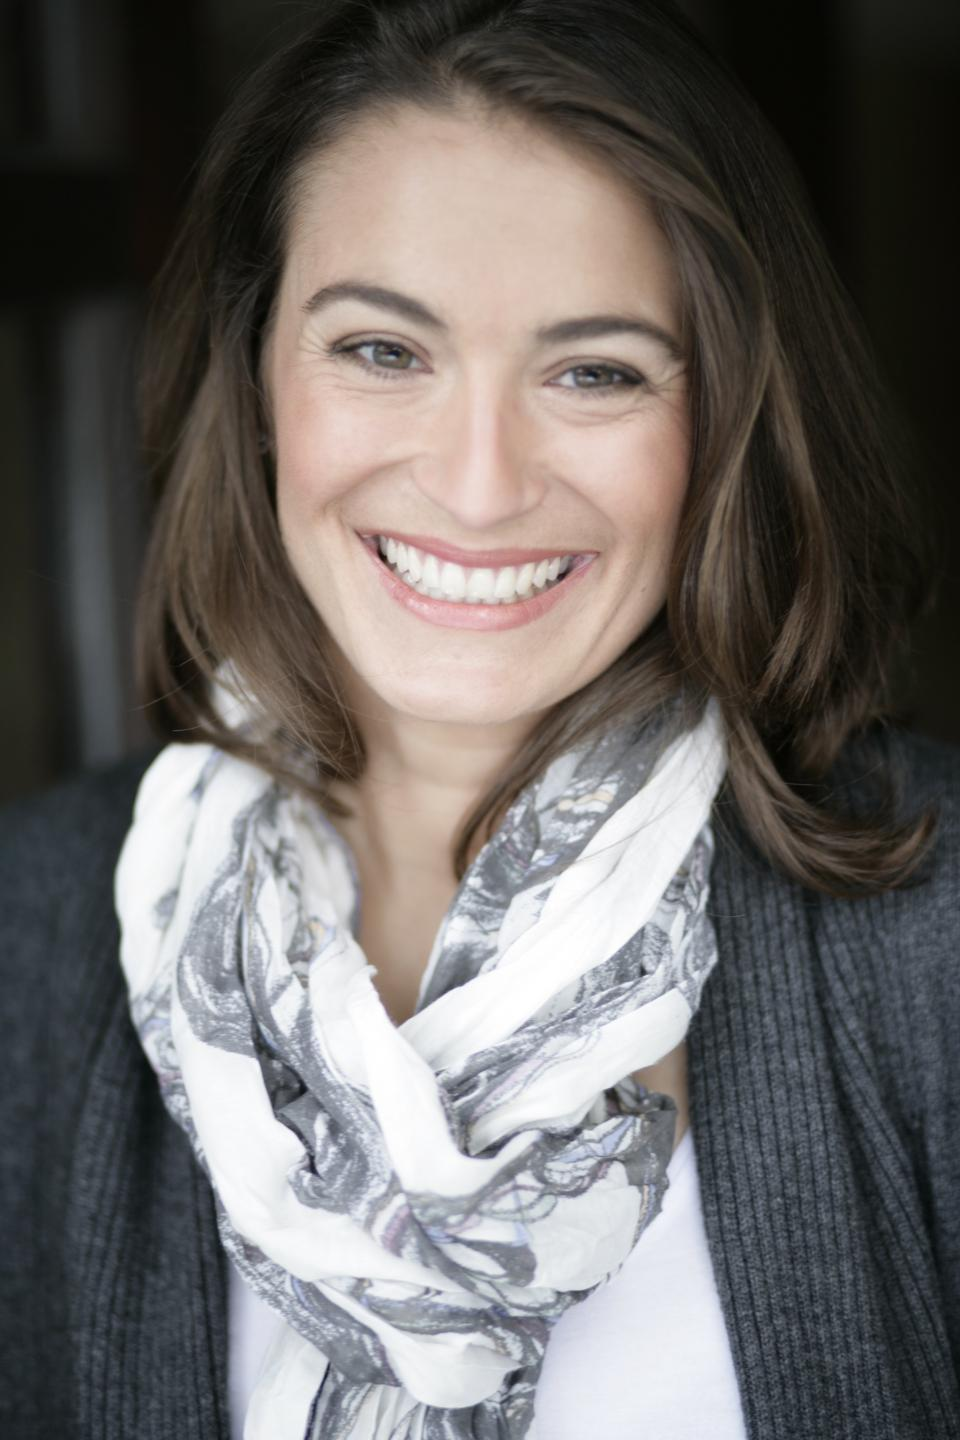 Claudia Pedretti, Head of Investor Relations